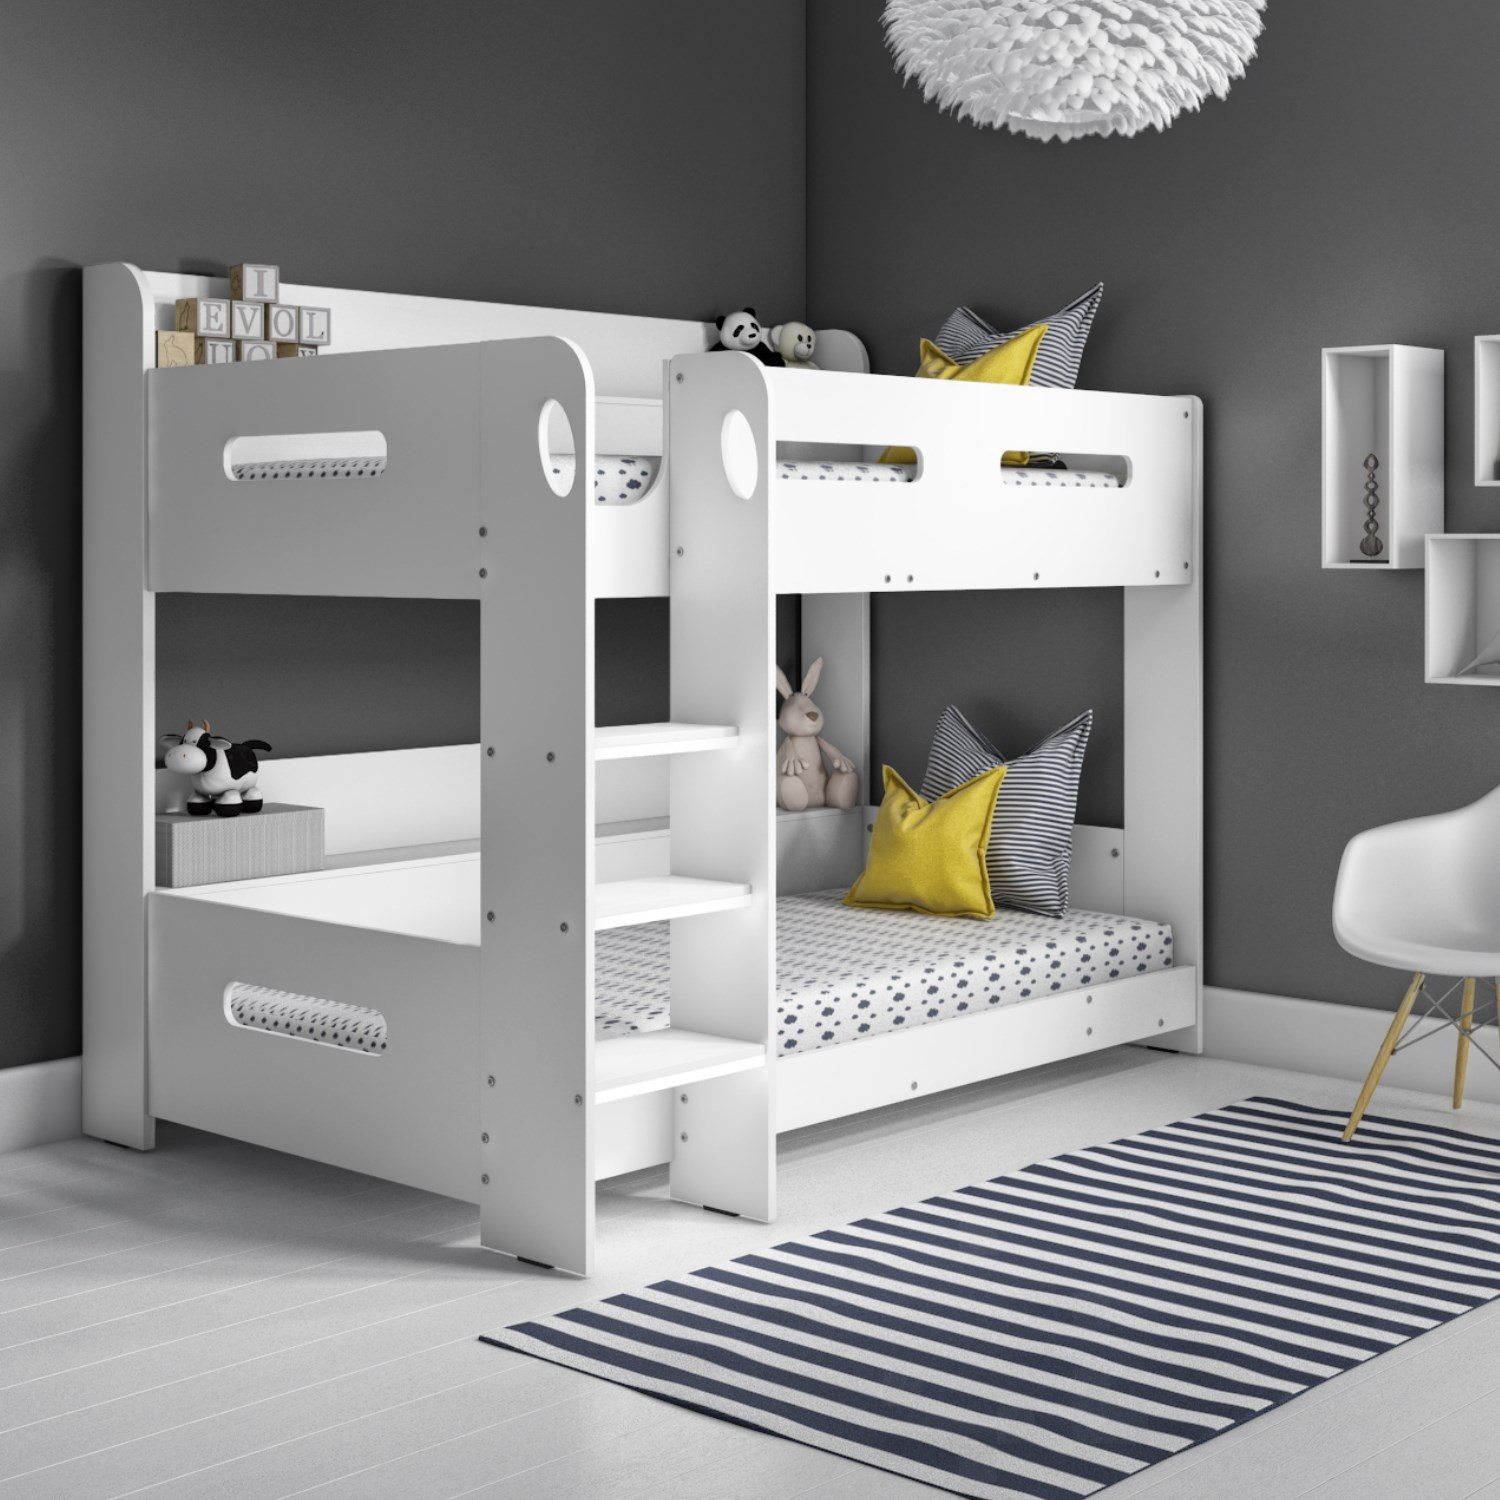 Sky White Bunk Bed - Ladder Can Be Fitted Either Side!